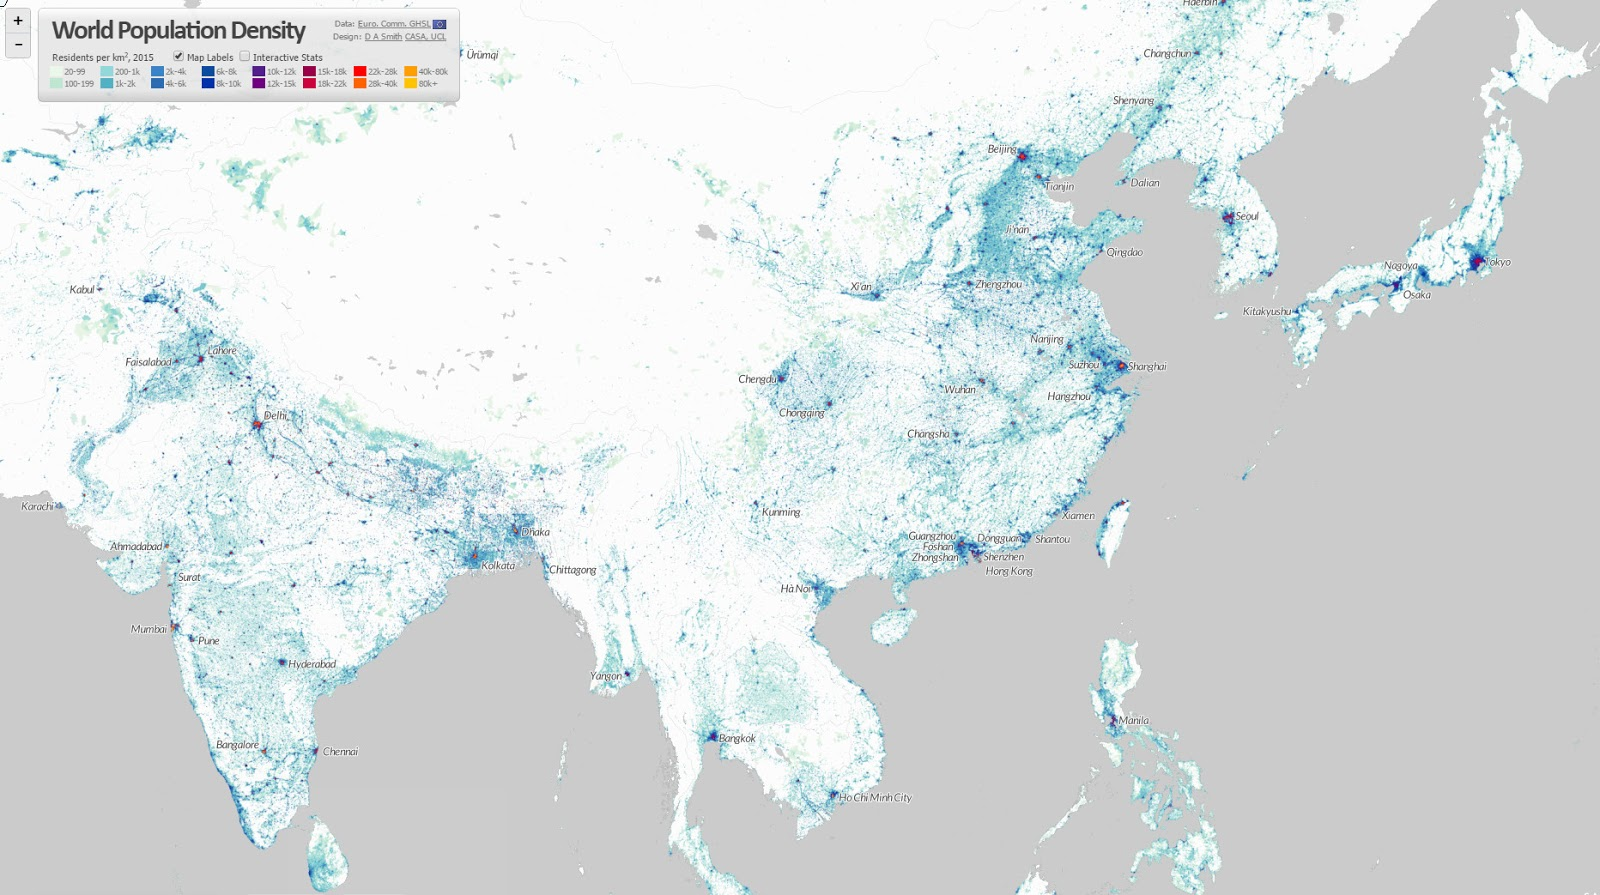 World population density (one dot per person) - China & India